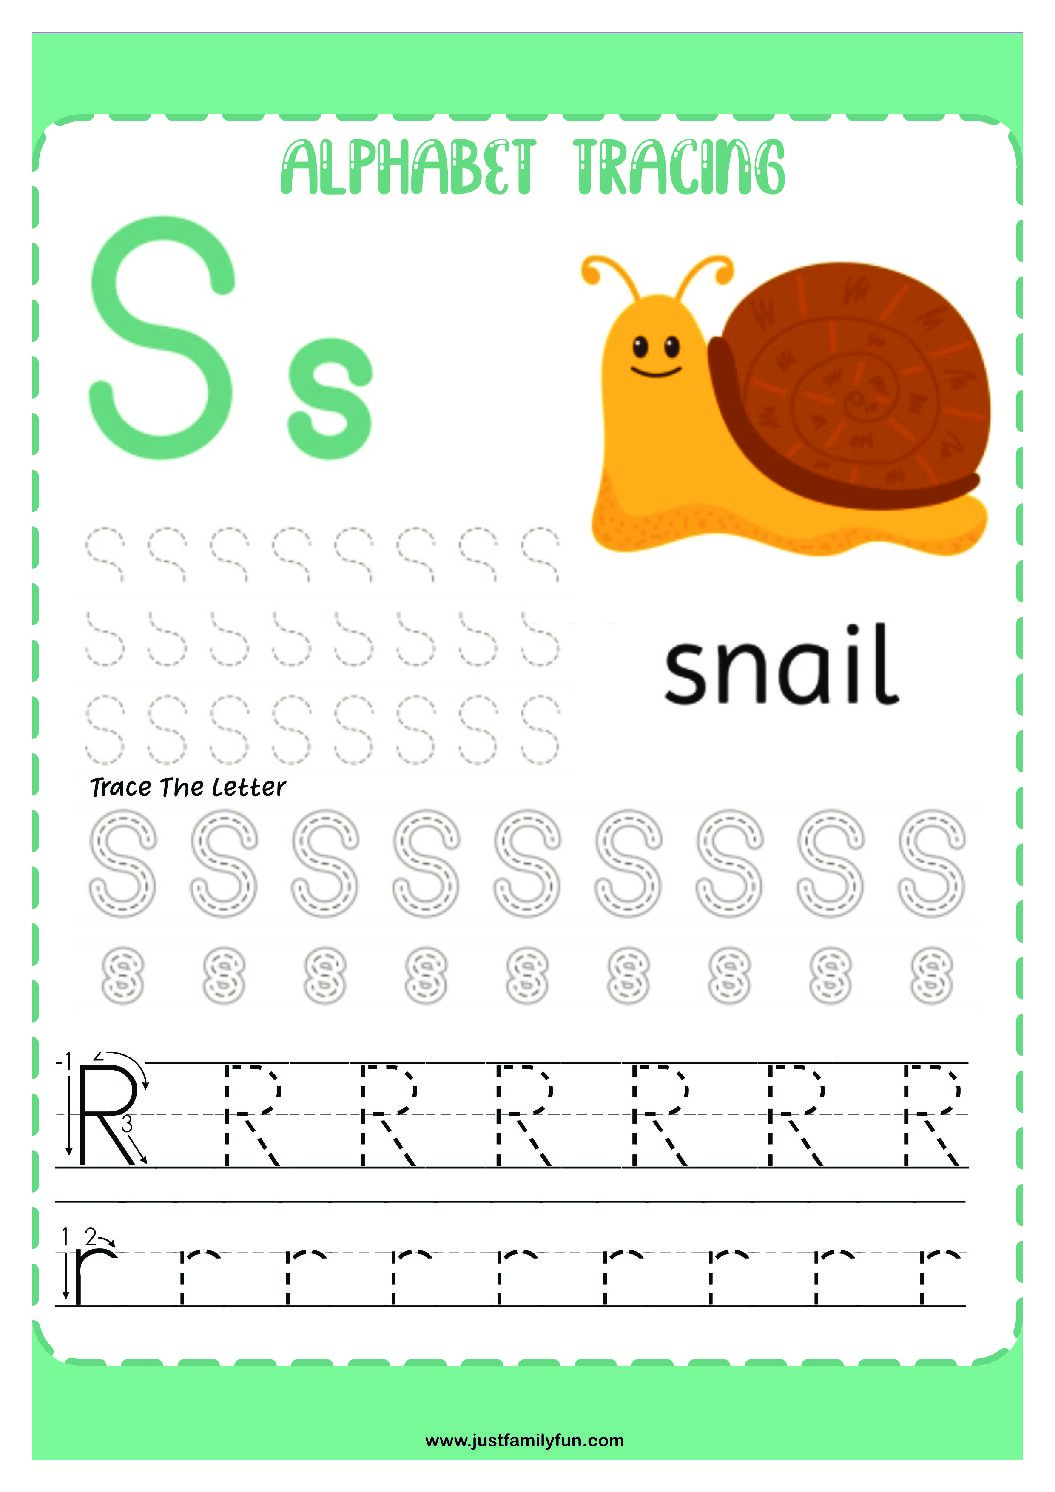 Alphabets_19-pdf Free Printable Trace The Alphabet Worksheets for Kids.